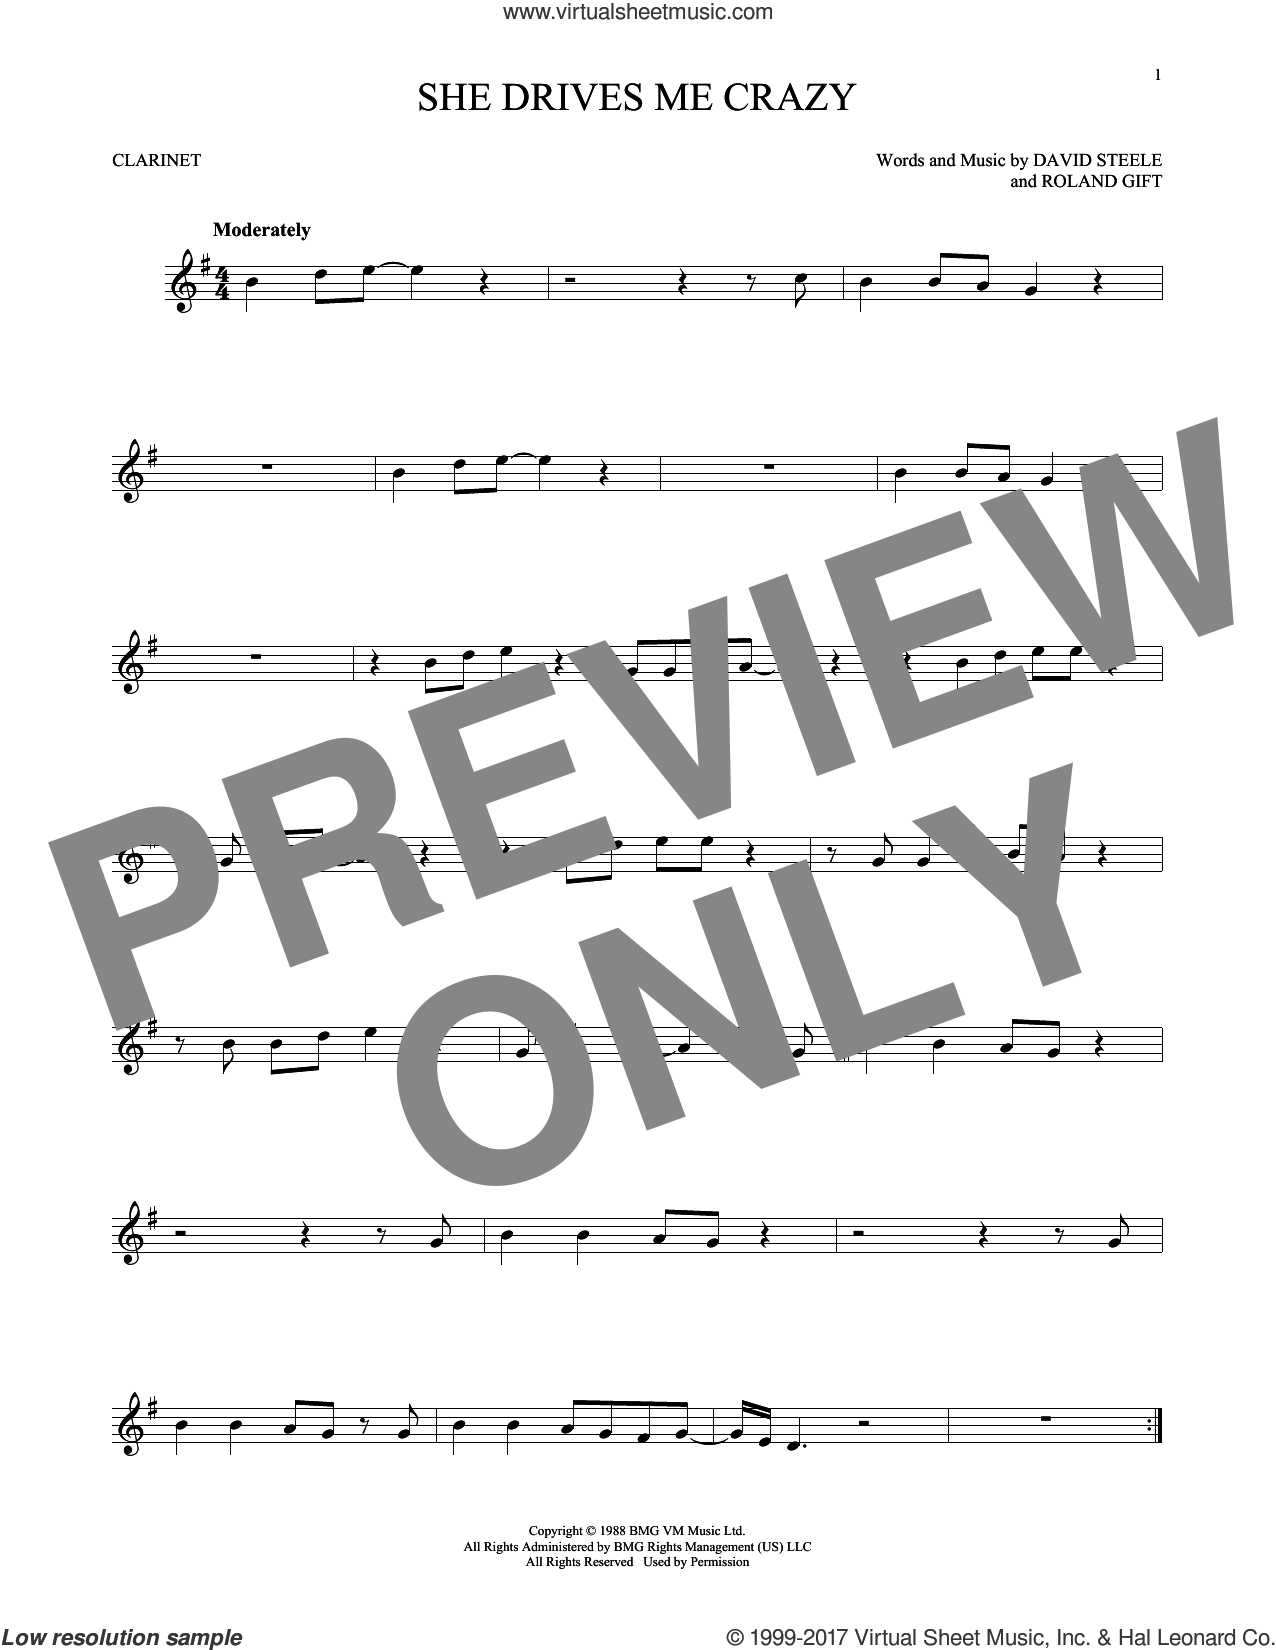 She Drives Me Crazy sheet music for clarinet solo by Fine Young Cannibals, David Steele and Roland Gift, intermediate skill level